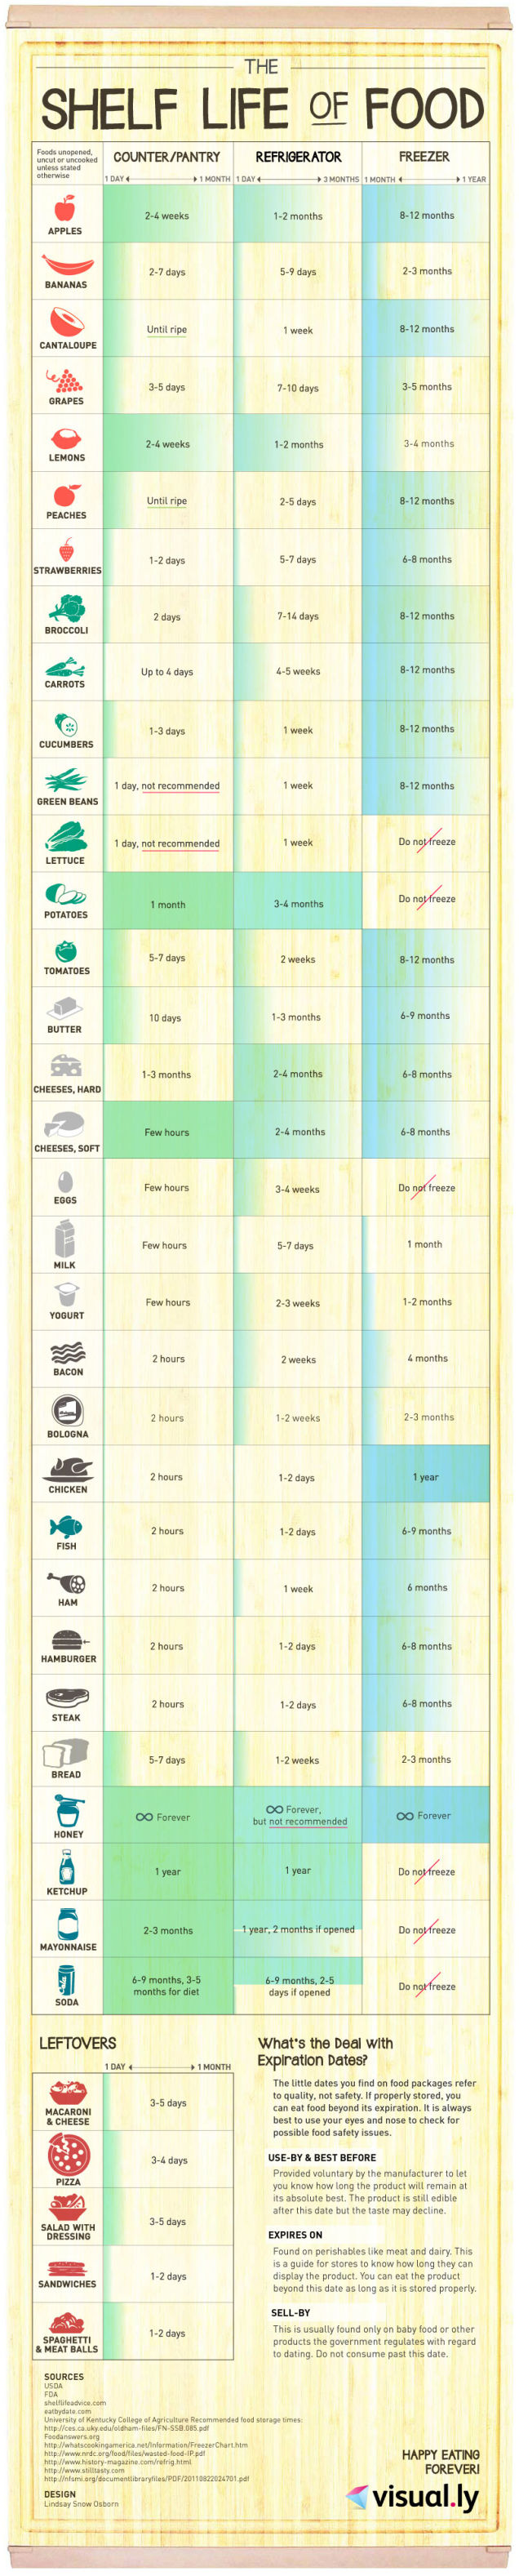 Food dating chart